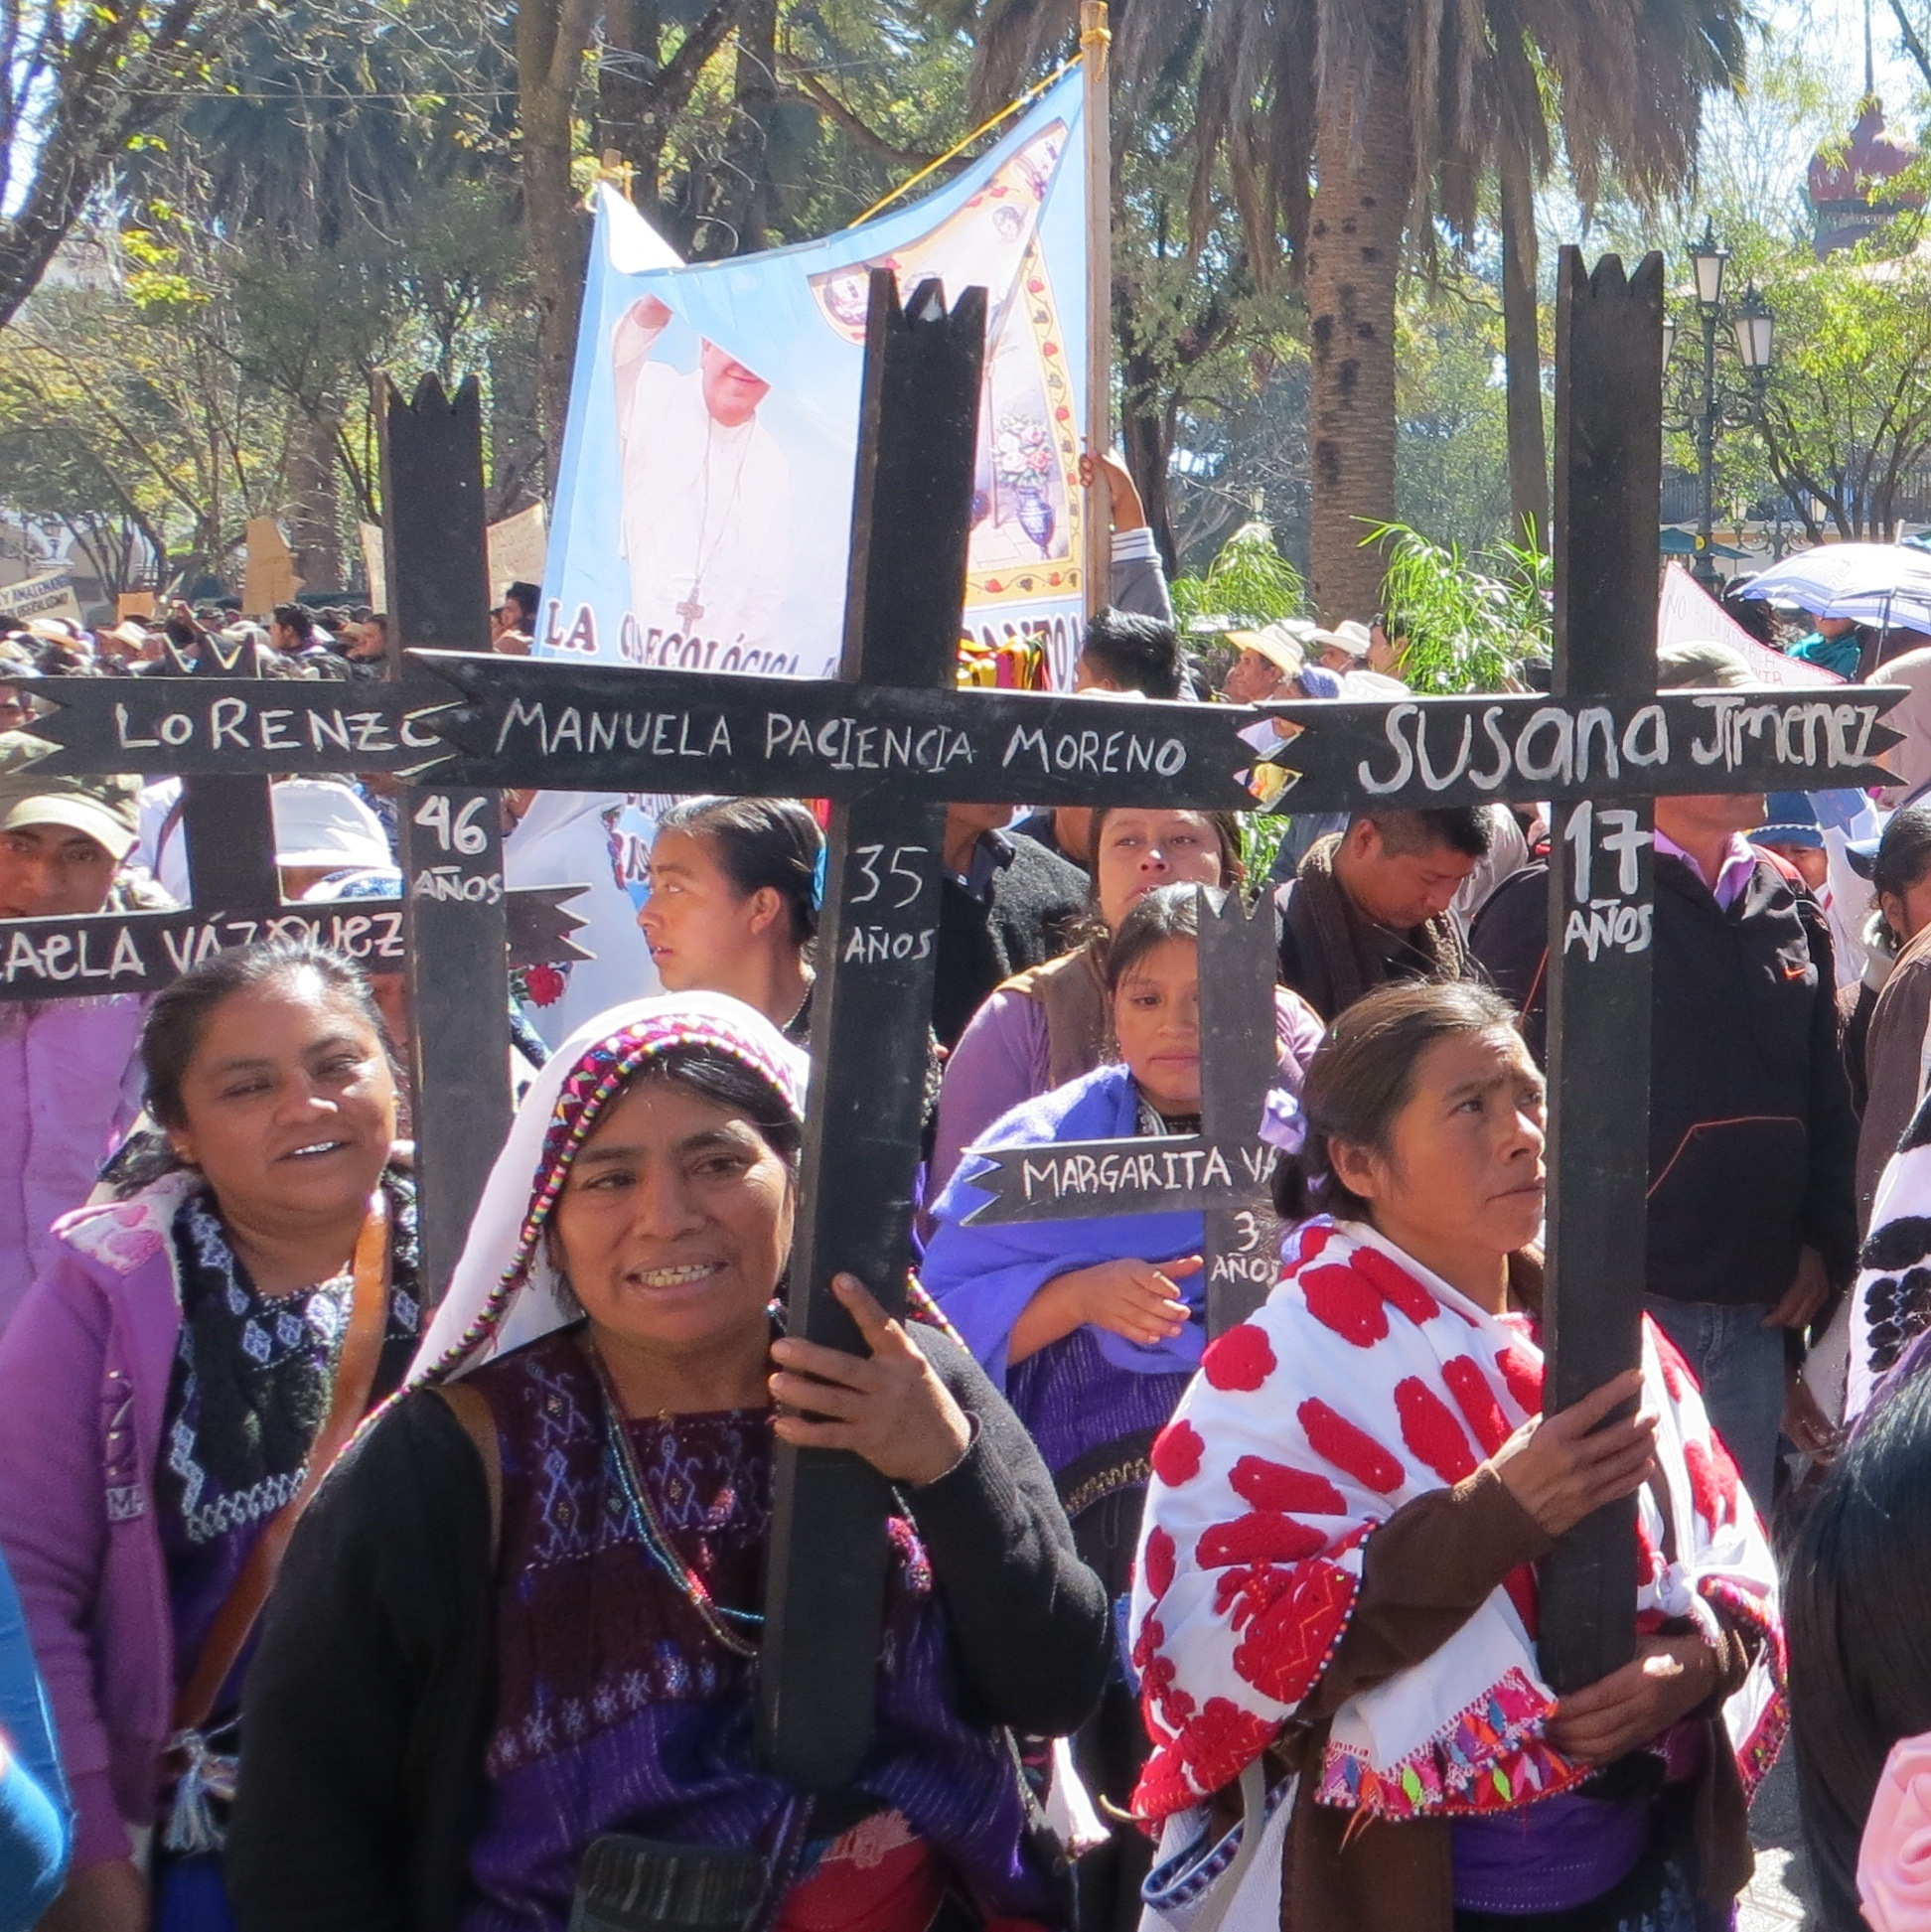 Procession in Chiapas, Mexico, of indigenous Catholics